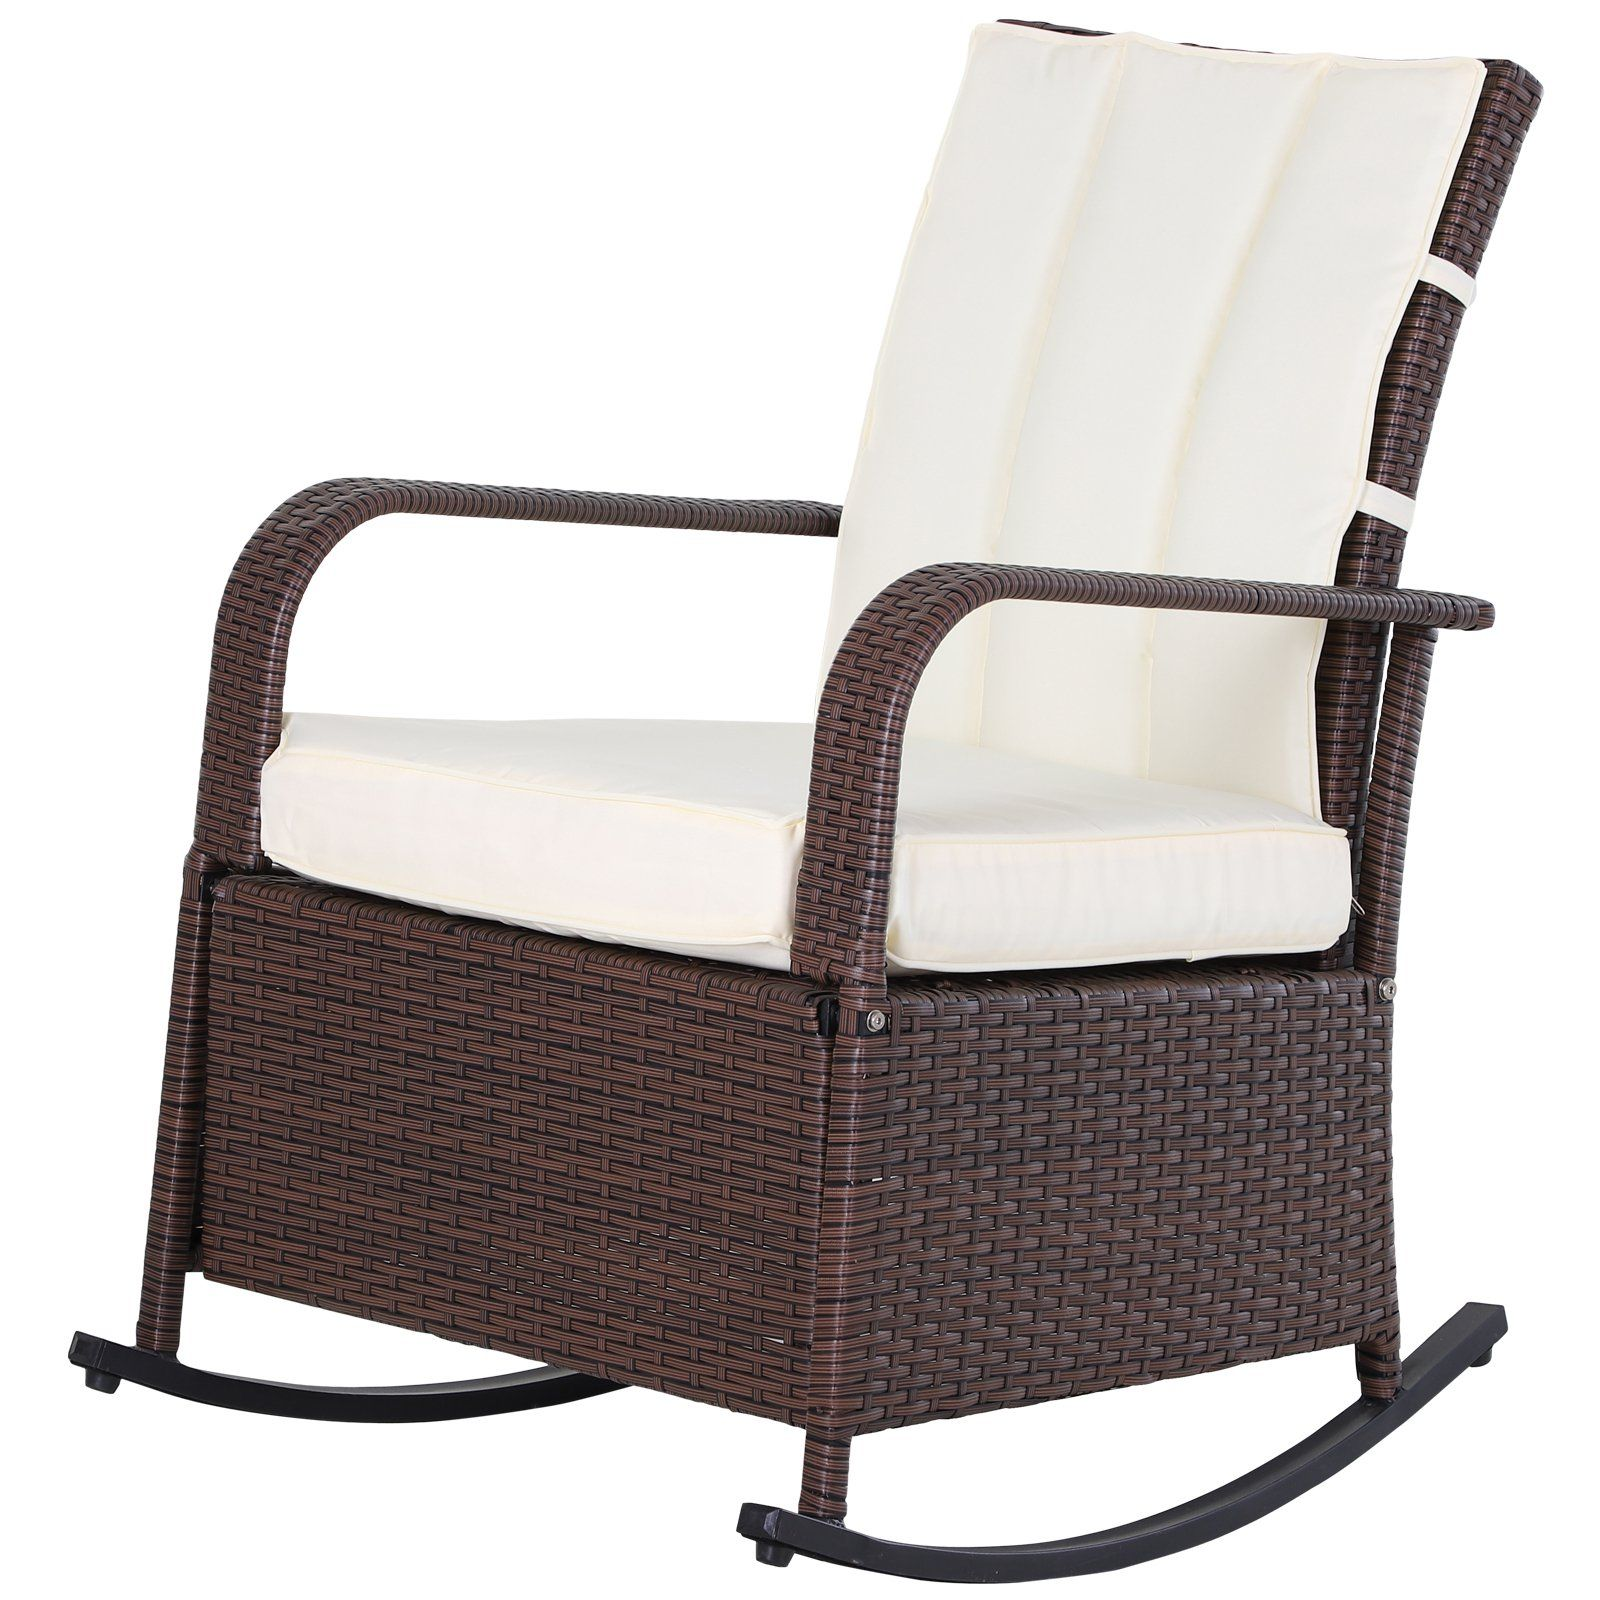 Outsunny Outdoor Wicker Rattan Recliner Rocking Cushioned Chair With Footrest 135 Degrees Of Comfort White Cushions Recline Outdoor Gliders Aosom In 2020 Reclining Rocking Chair Chair Cushions White Cushions